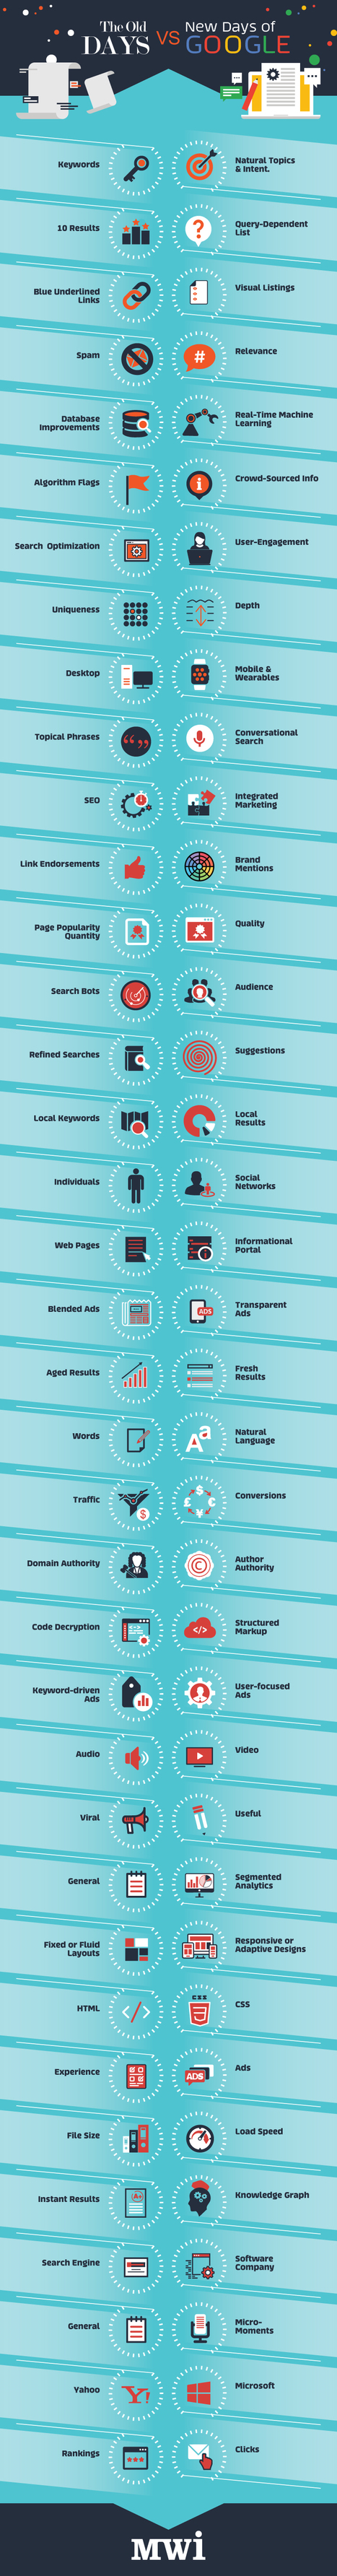 The Old Days VS New Days of Google [Infographic] | SEO and Social Media Marketing | Scoop.it